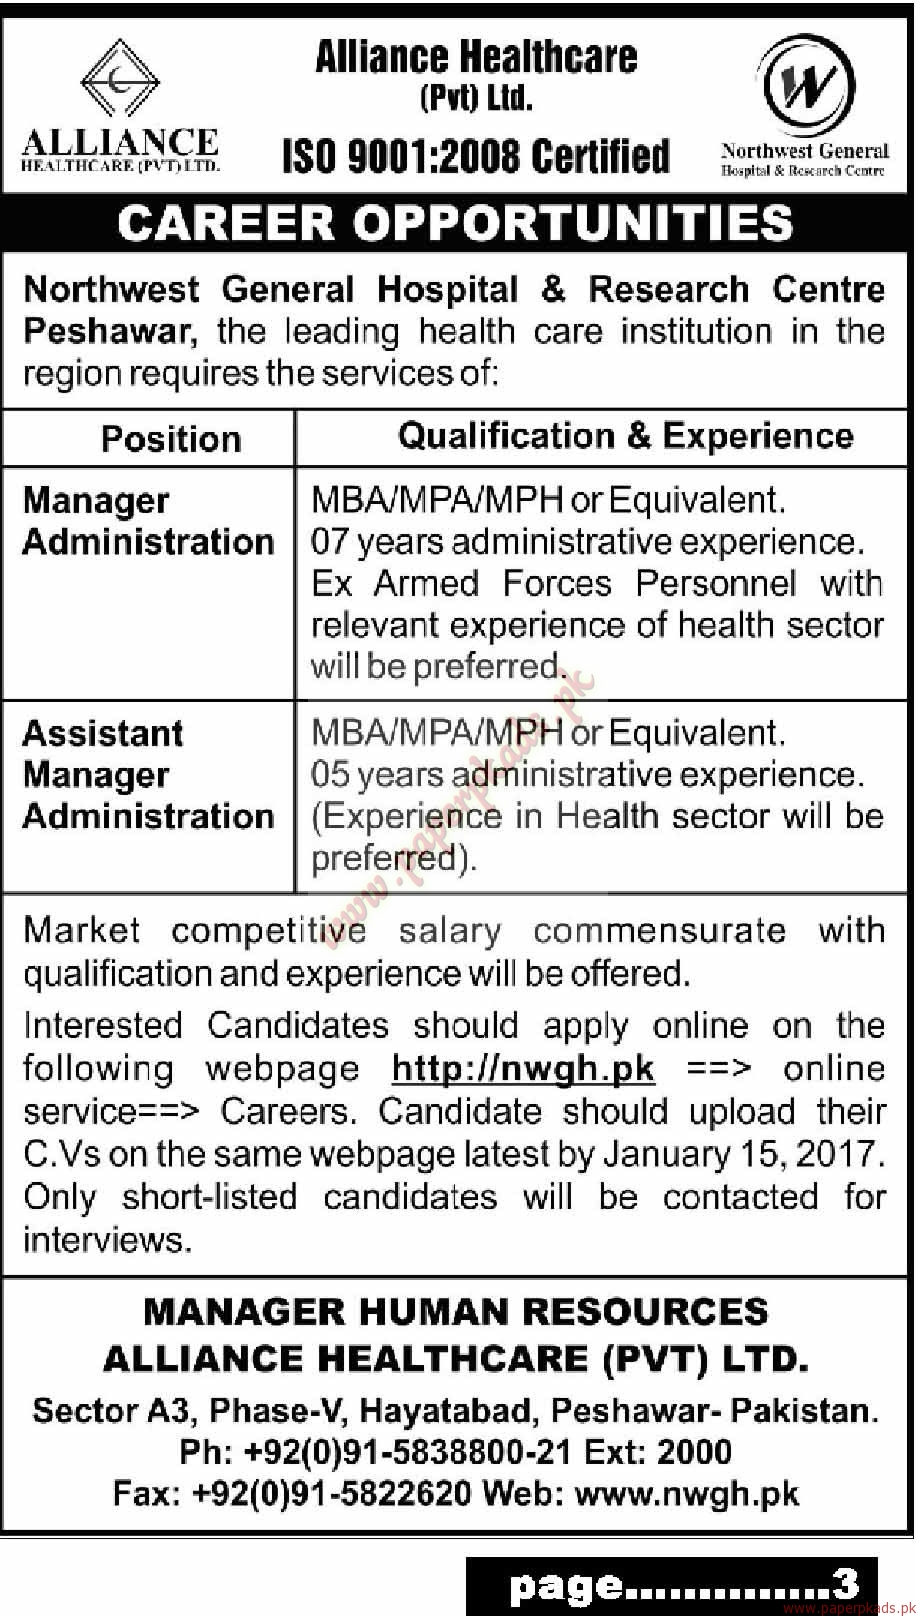 Northwest General Hospital and Research Centre Jobs - Mashriq Jobs ads 05 January 2017